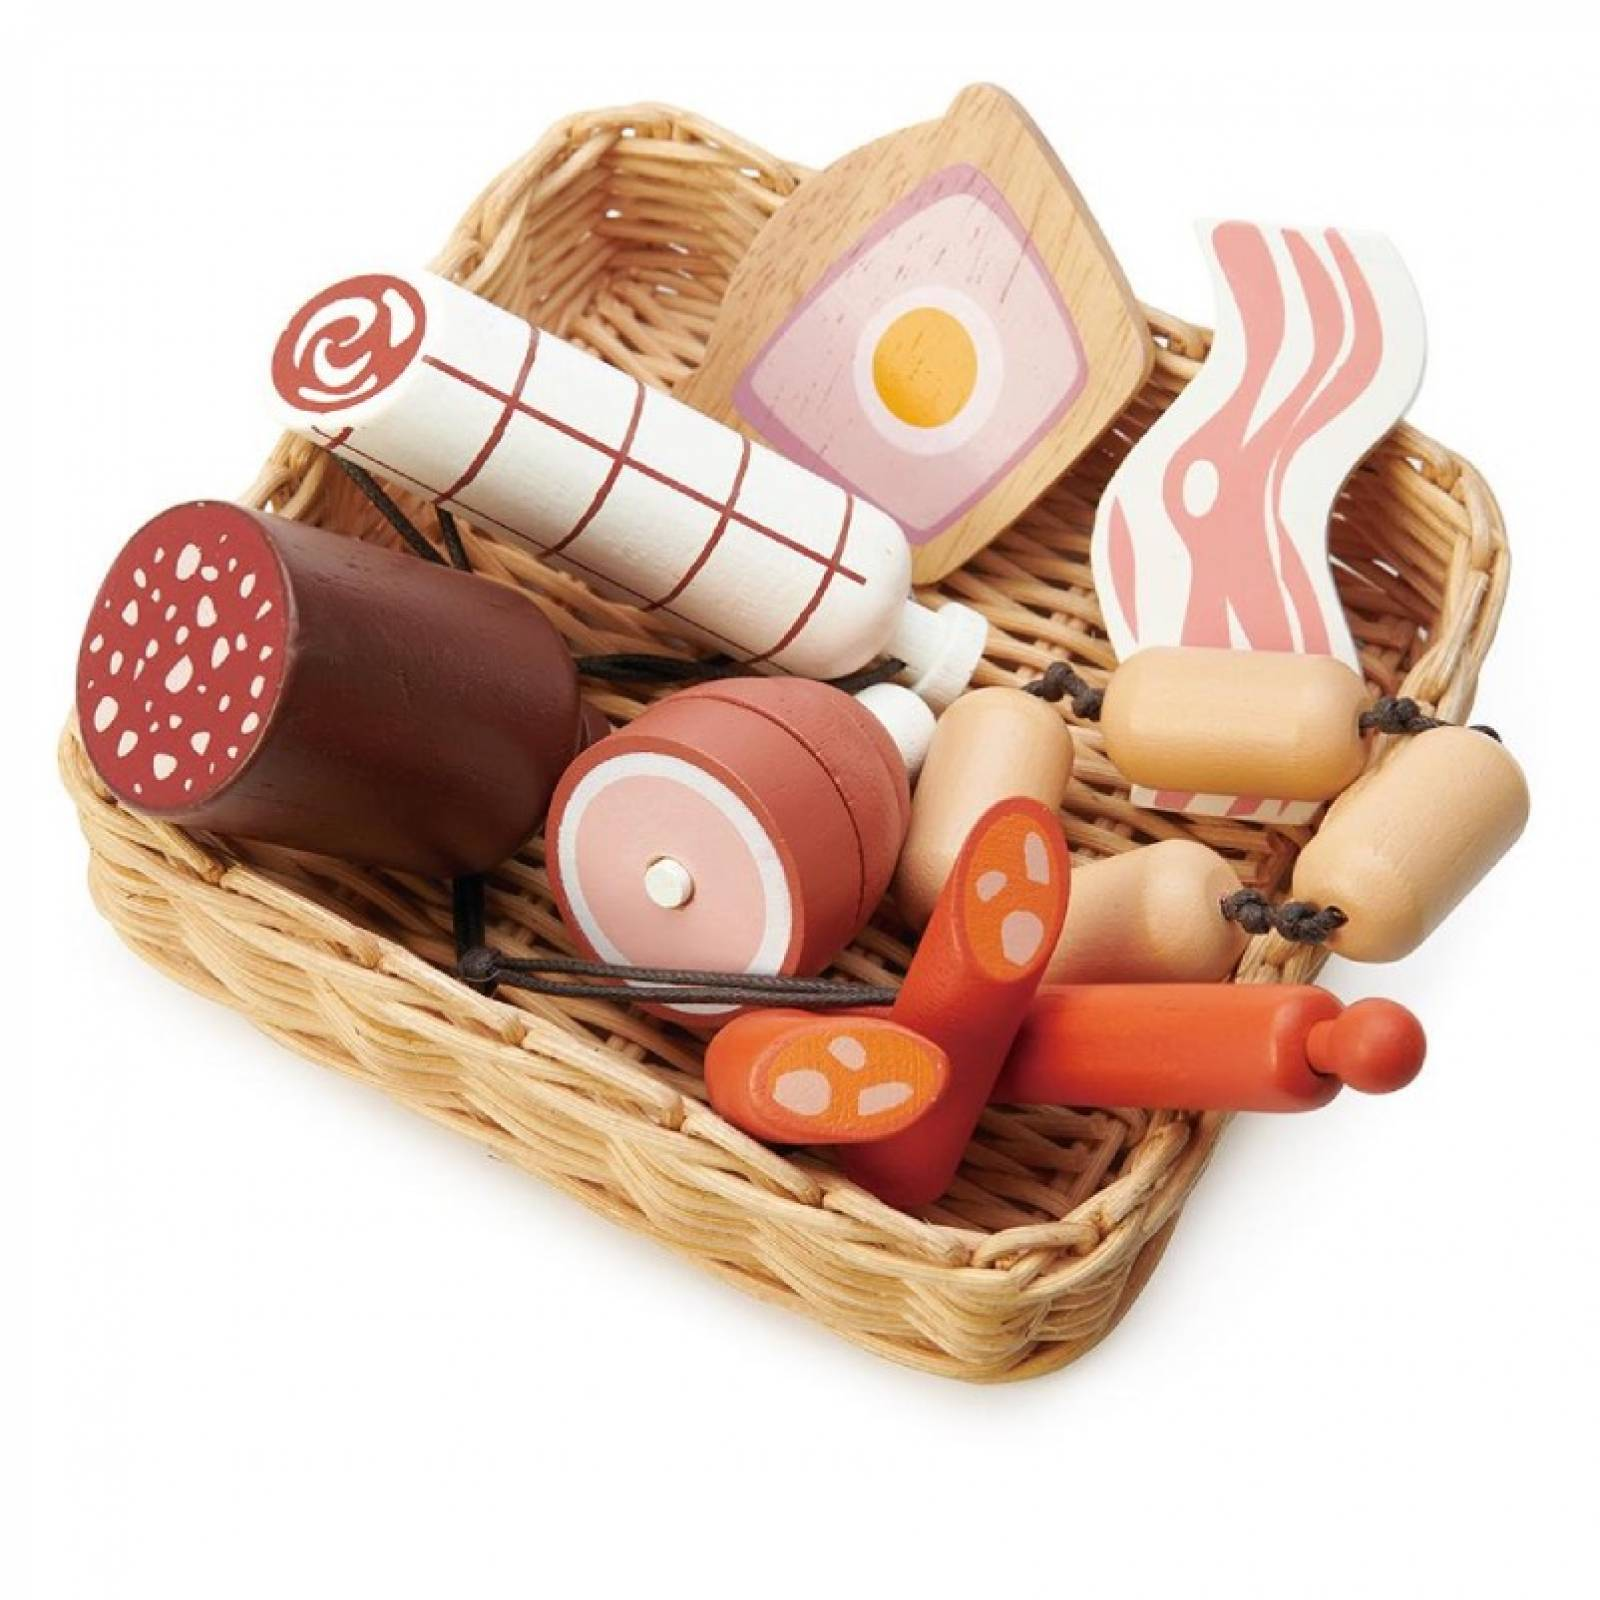 Charcuterie Basket Wooden Play Food Set 3+